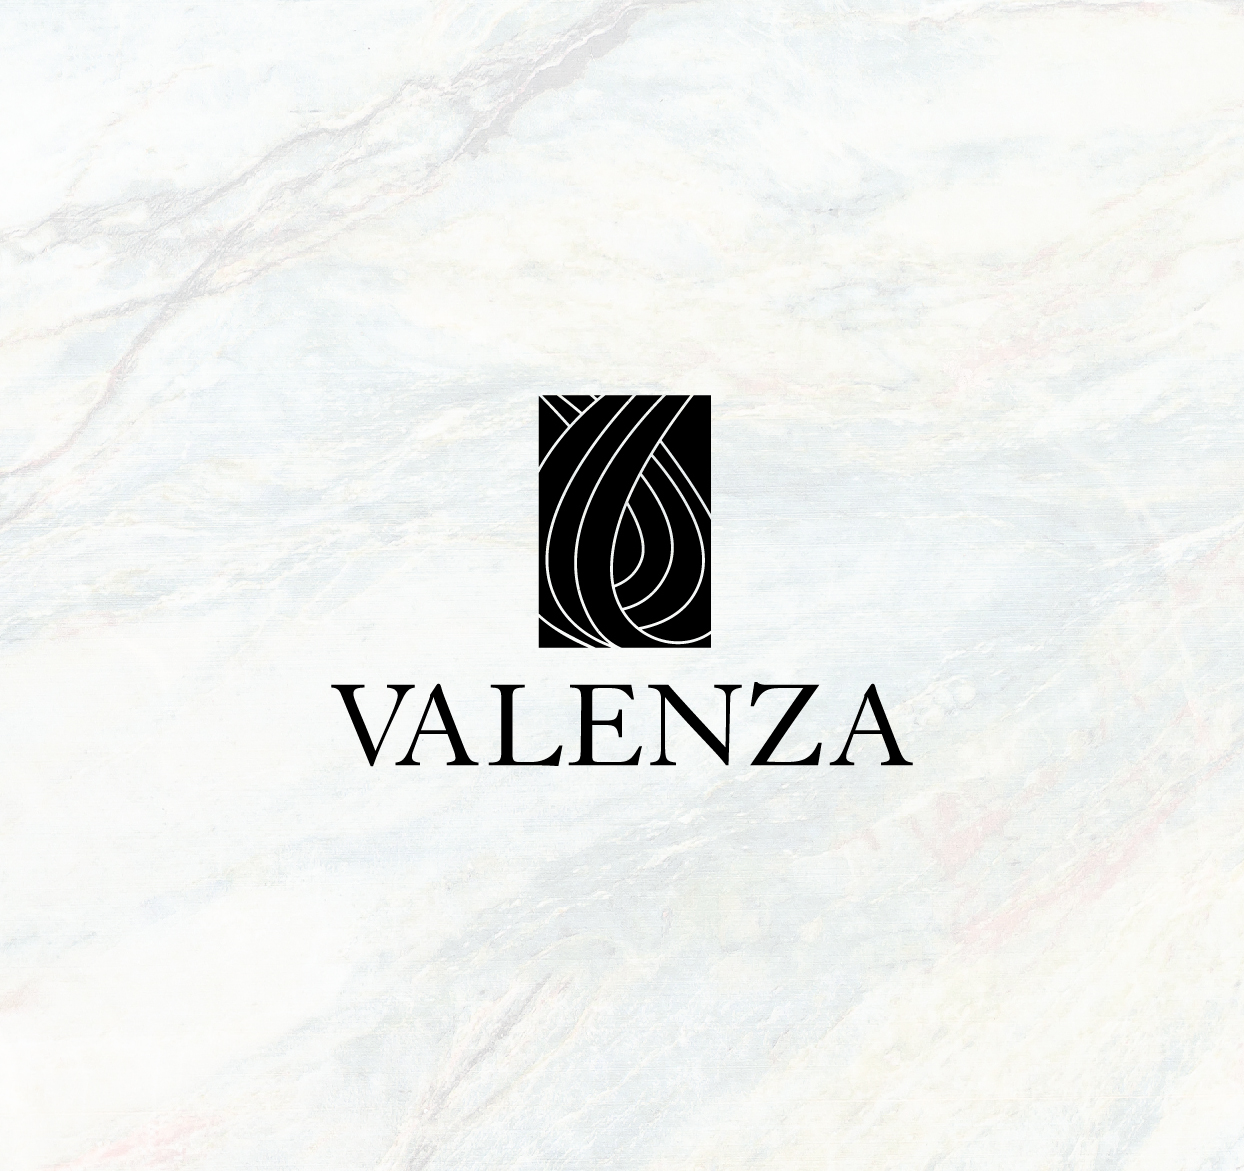 a hairstylist logo on marble background